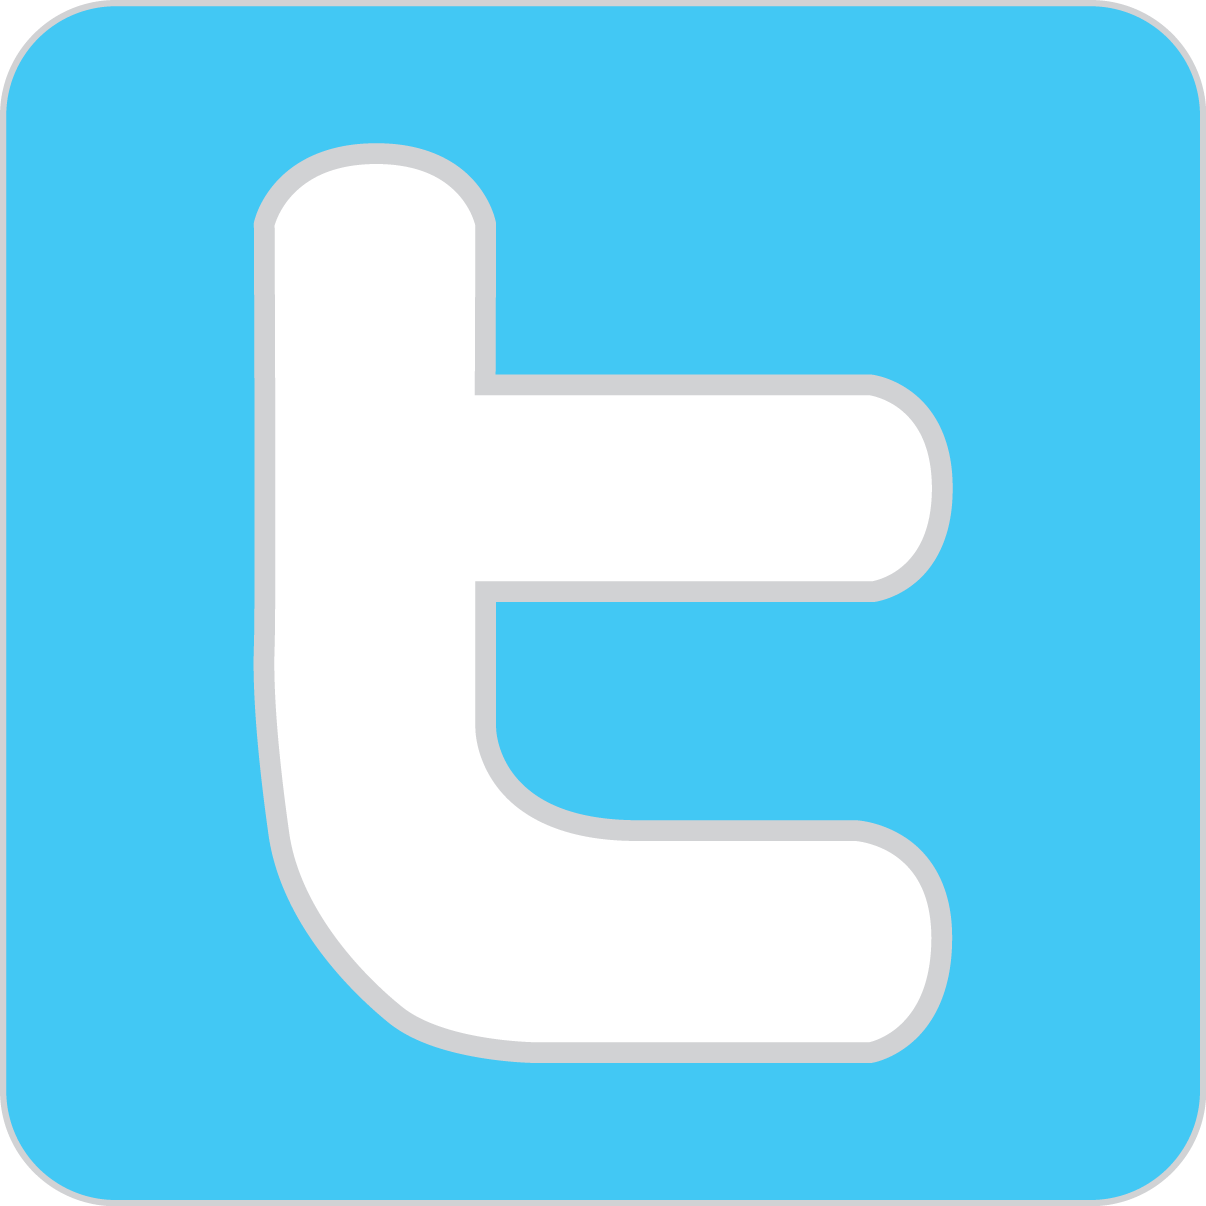 twitter high quality png web icons png rh webiconspng com twitter logo png black twitter logo png file